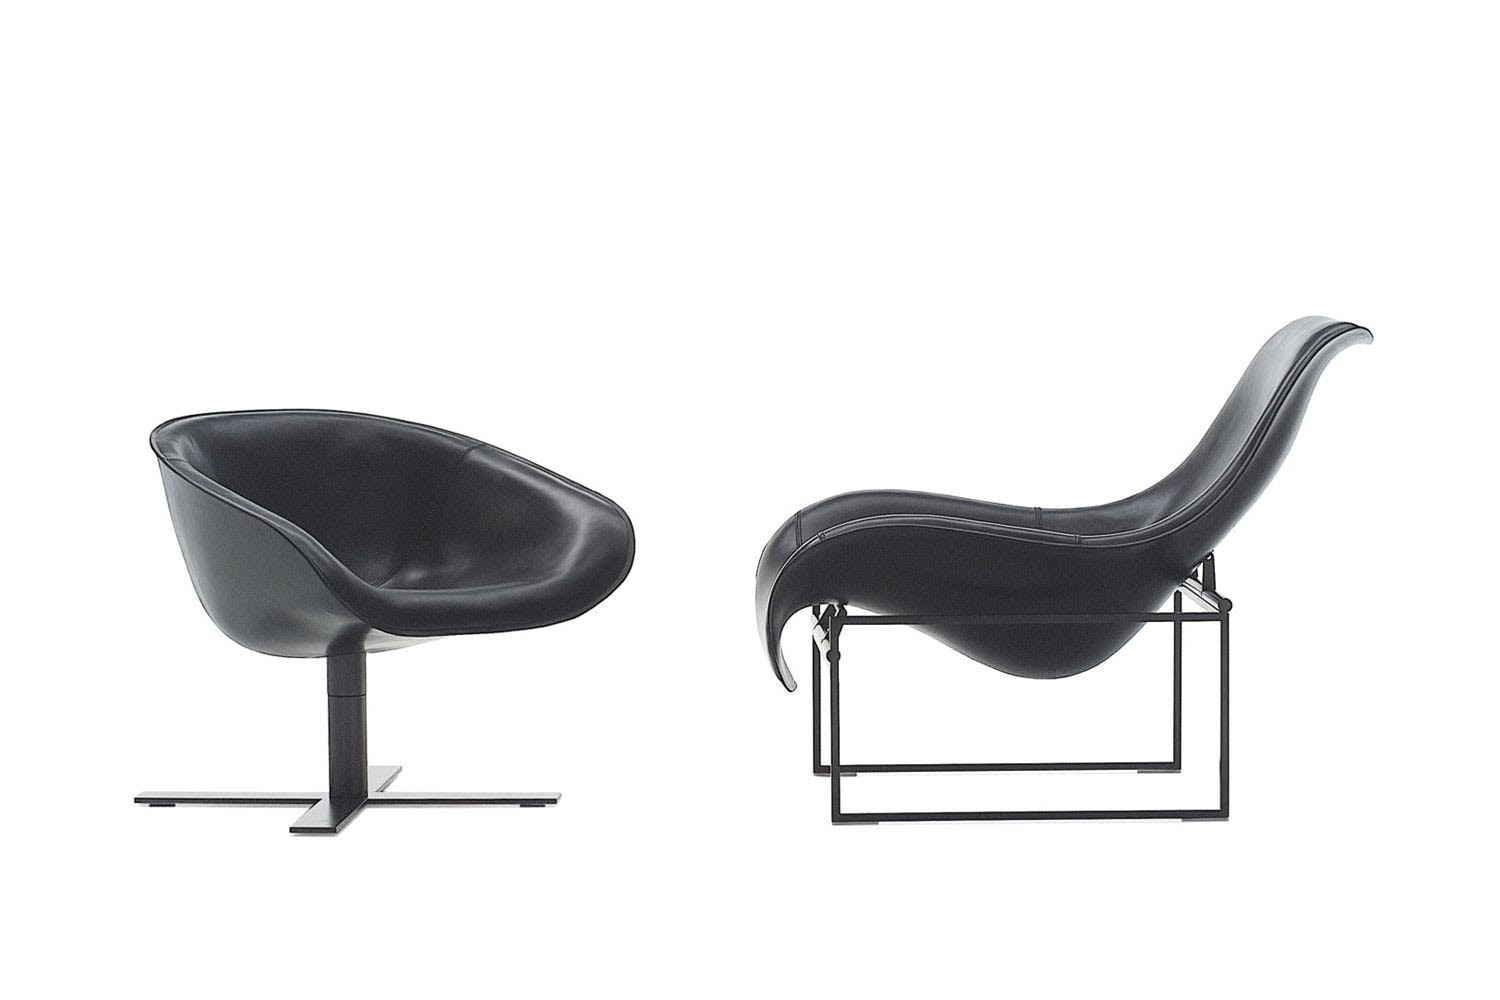 Mart Armchair by Antonio Citterio for B&B Italia